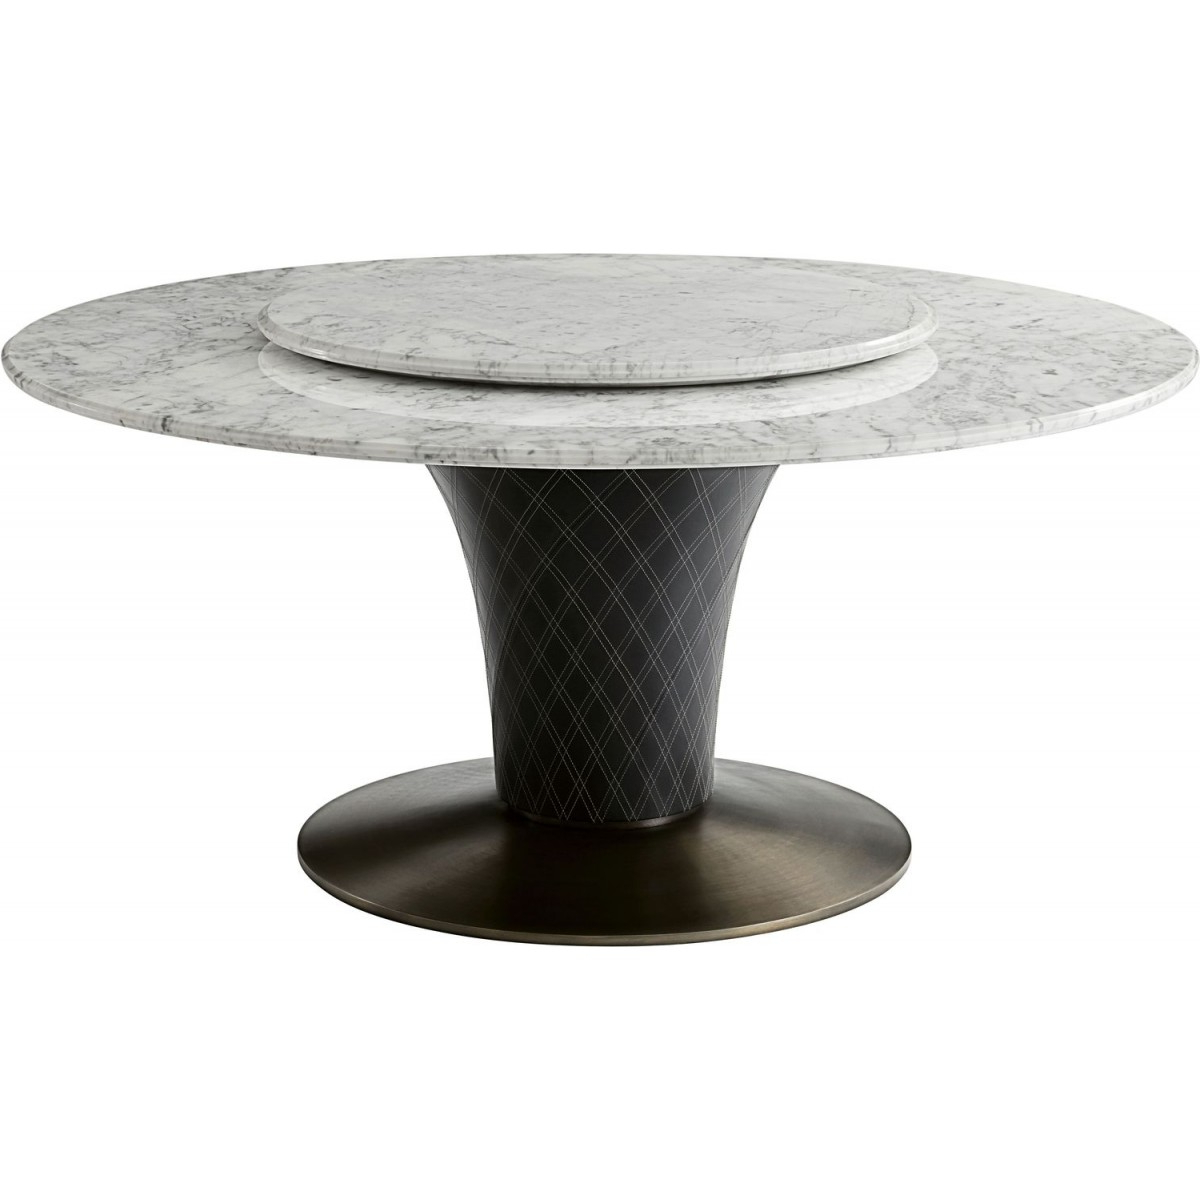 Theodore Alexander Steve Leung Pirouette Round Dining Table Throughout Preferred Alexandra Round Marble Pedestal Dining Tables (View 13 of 25)